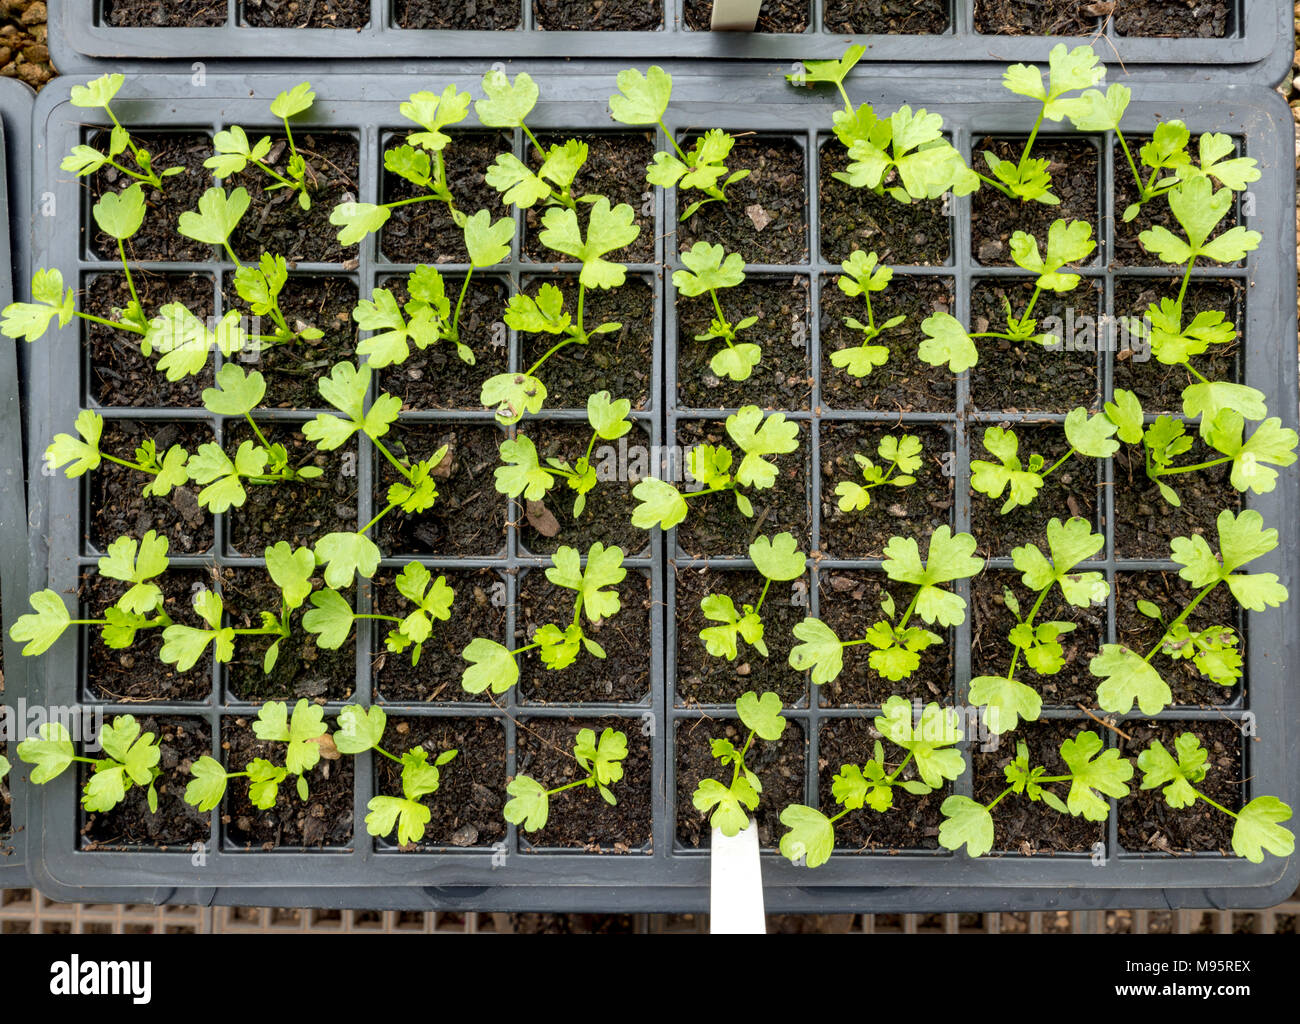 Seedling plants in a plastic growing tray in an English country garden greenhouse UK - Stock Image